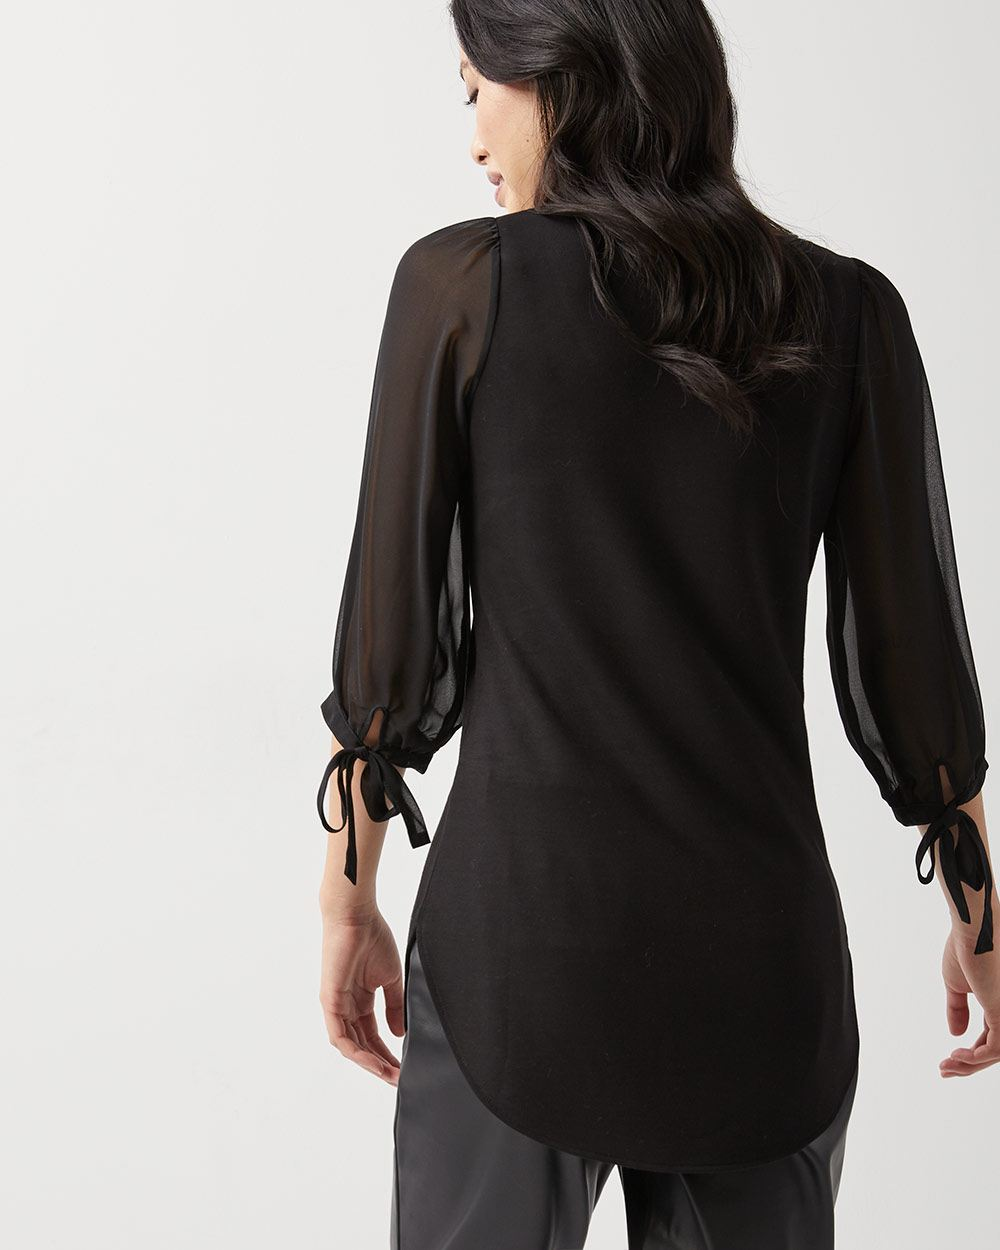 C&G Sheer voluminous sleeve tunic t-shirt